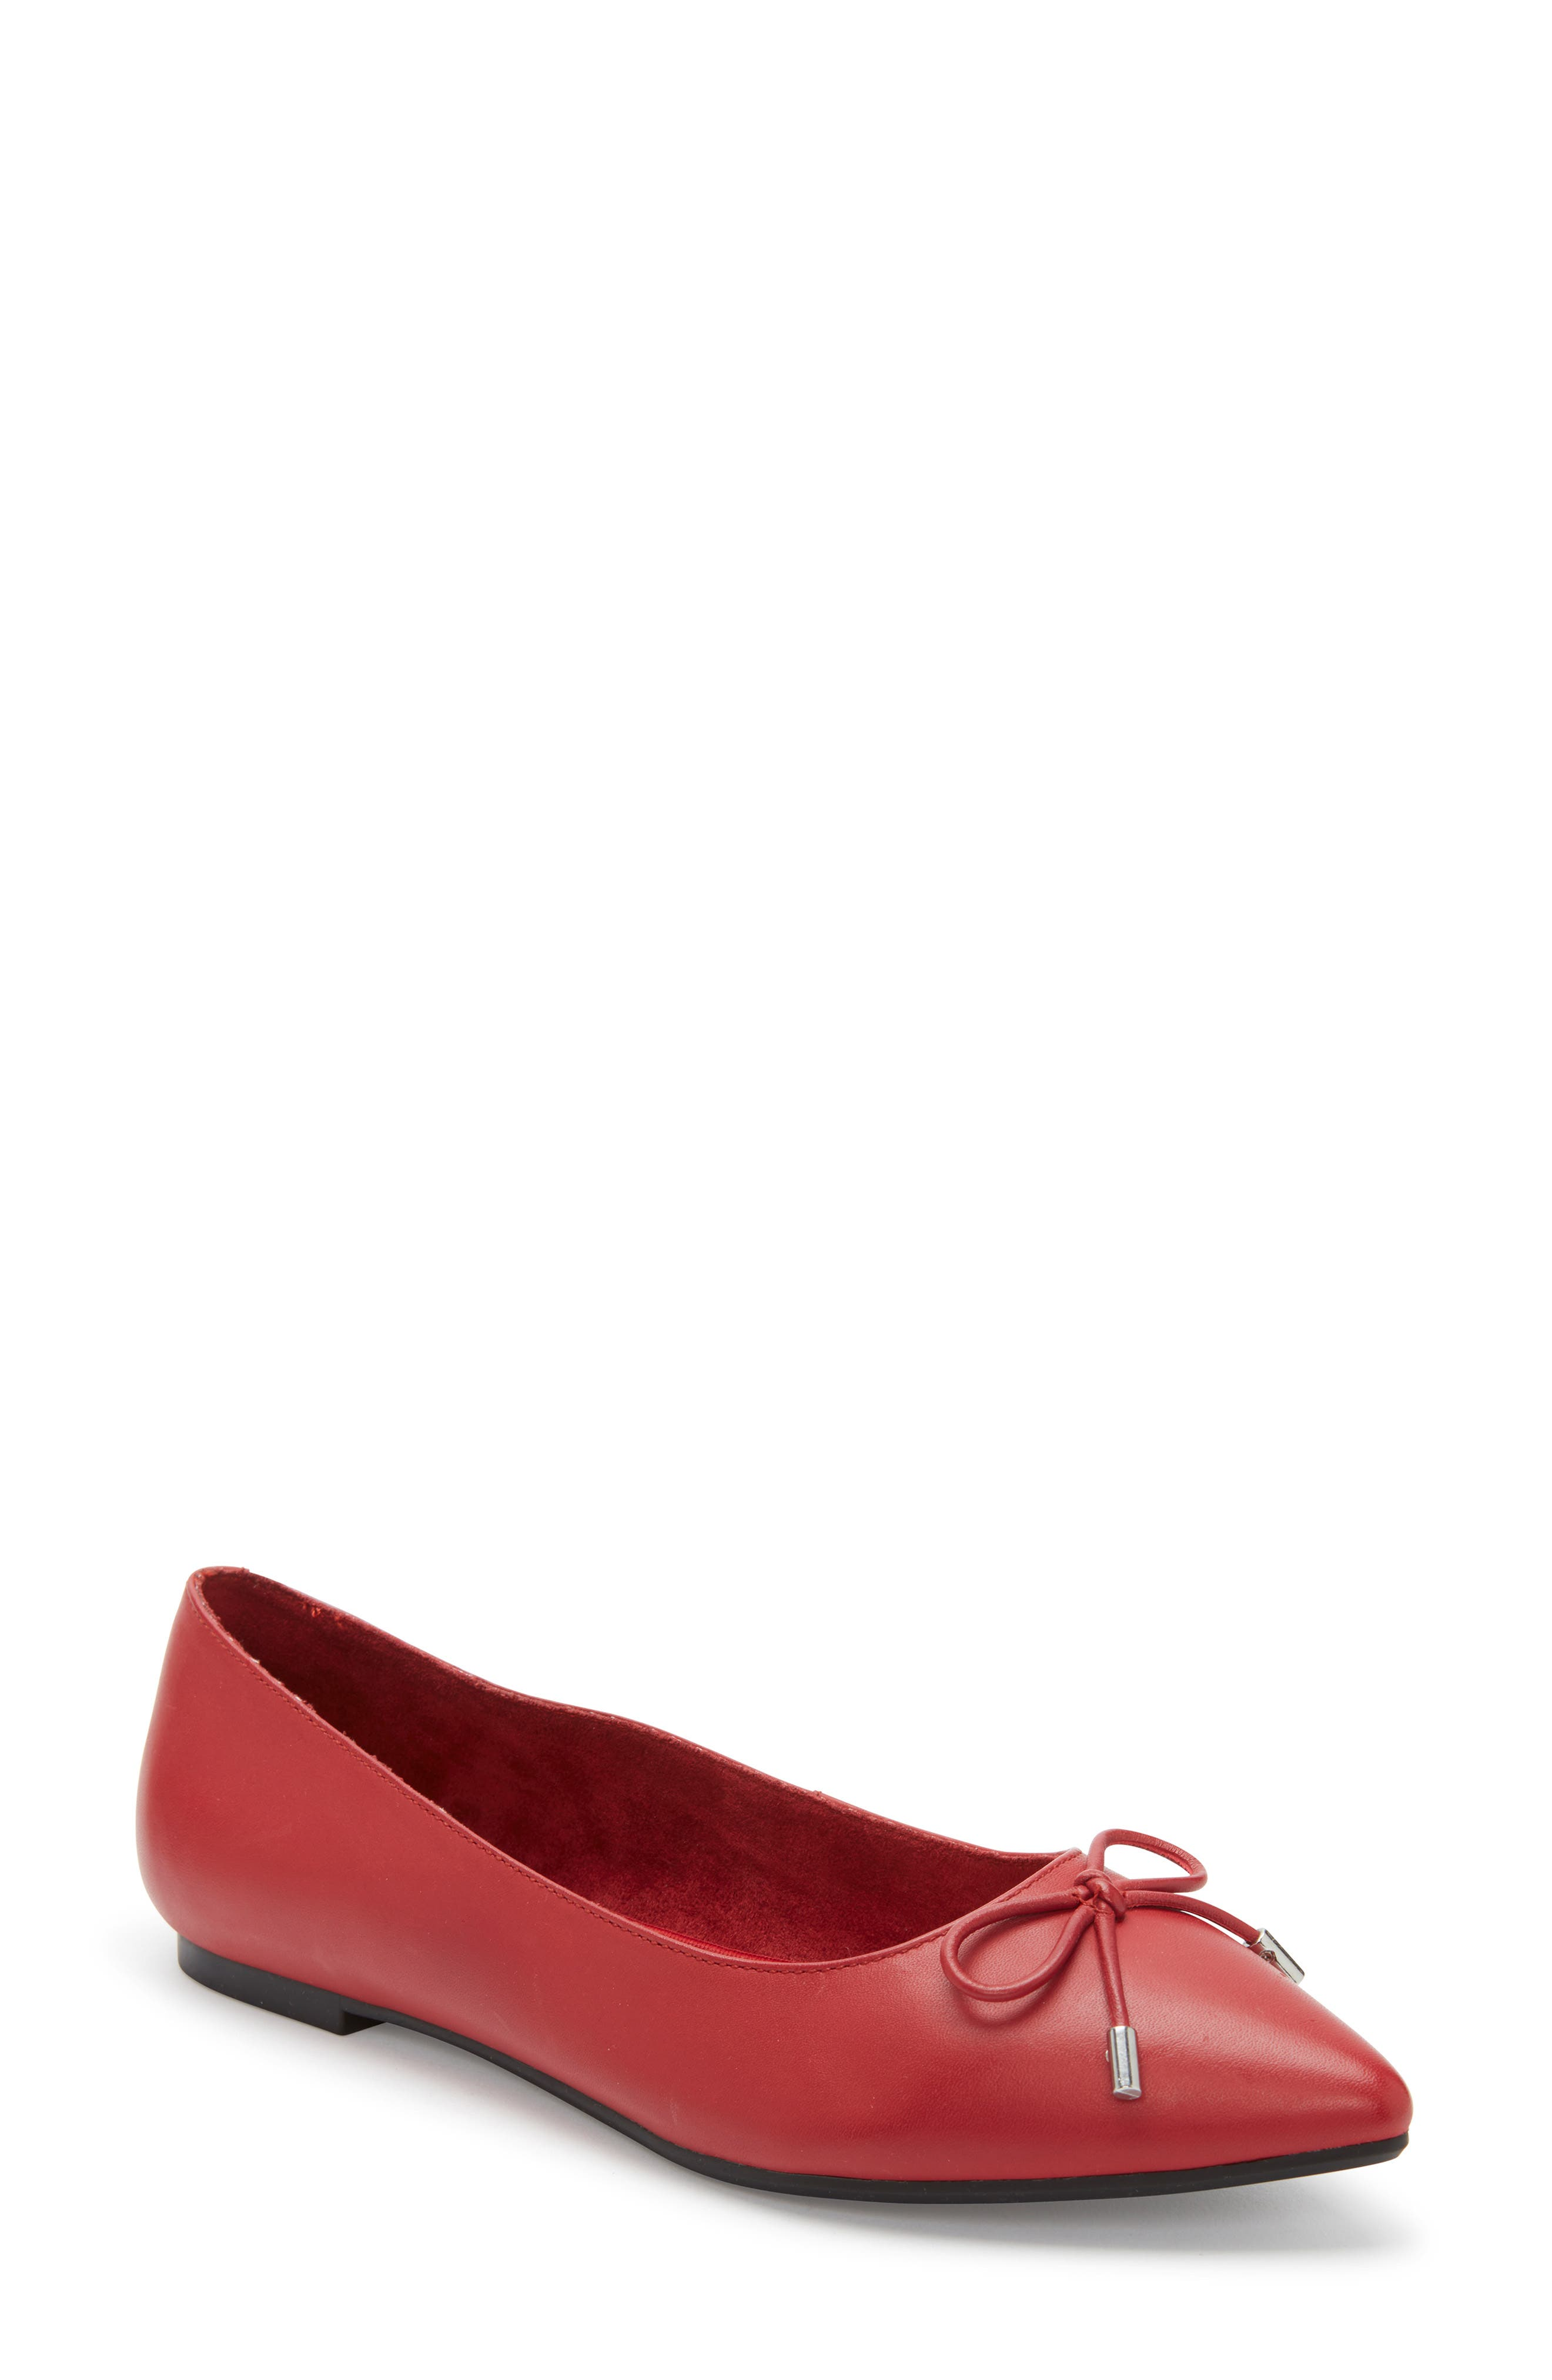 36f4ed7f2e0 Me Too Alisia Pointy Toe Flat- Red